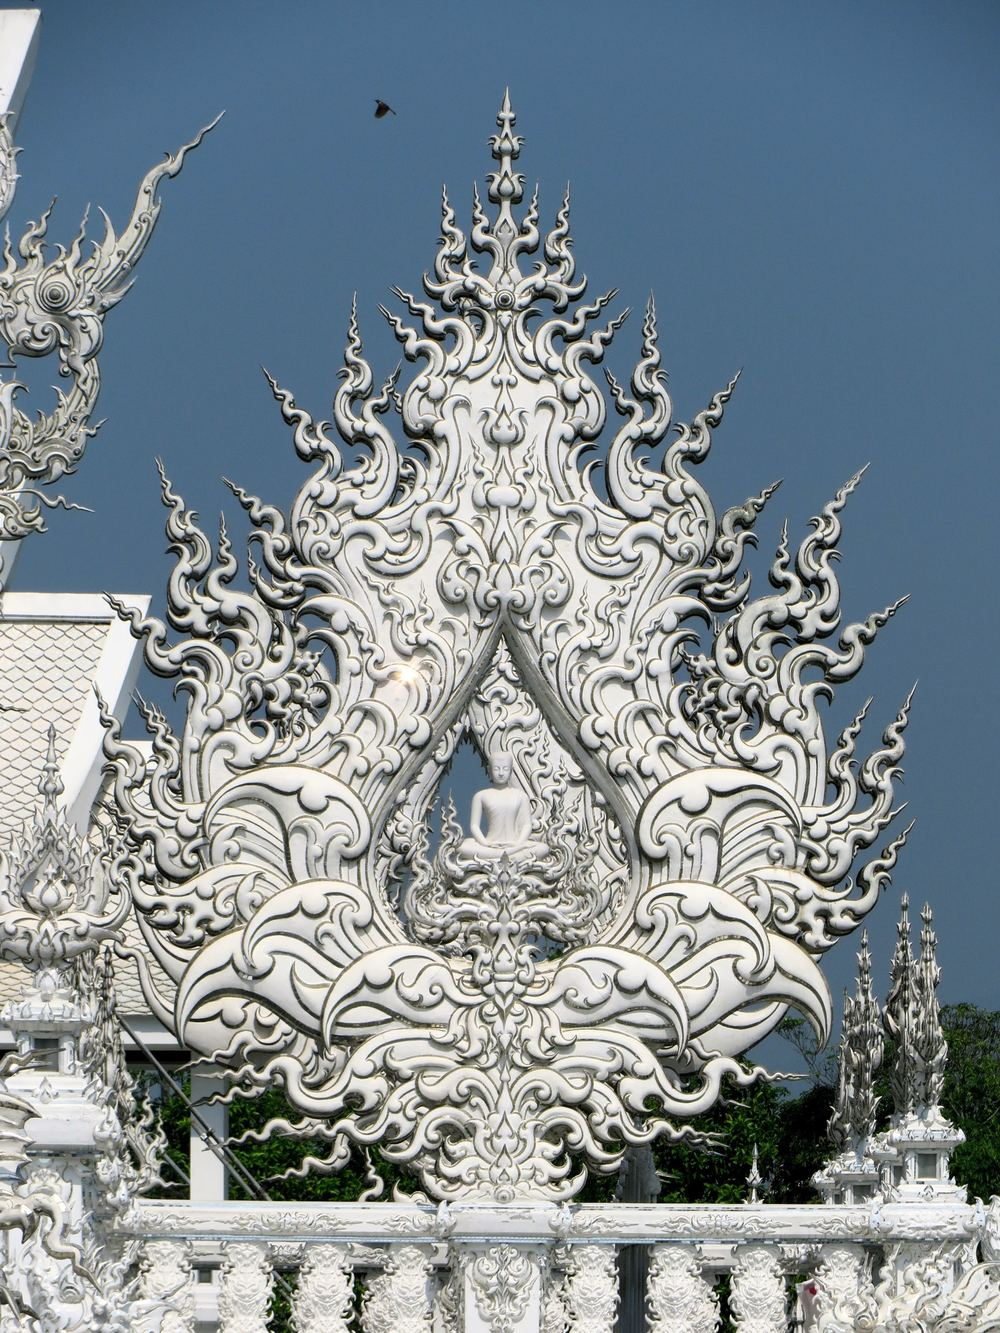 The temple itself is meat to symbolize the realm of Buddha and the rising to a state of nirvana.